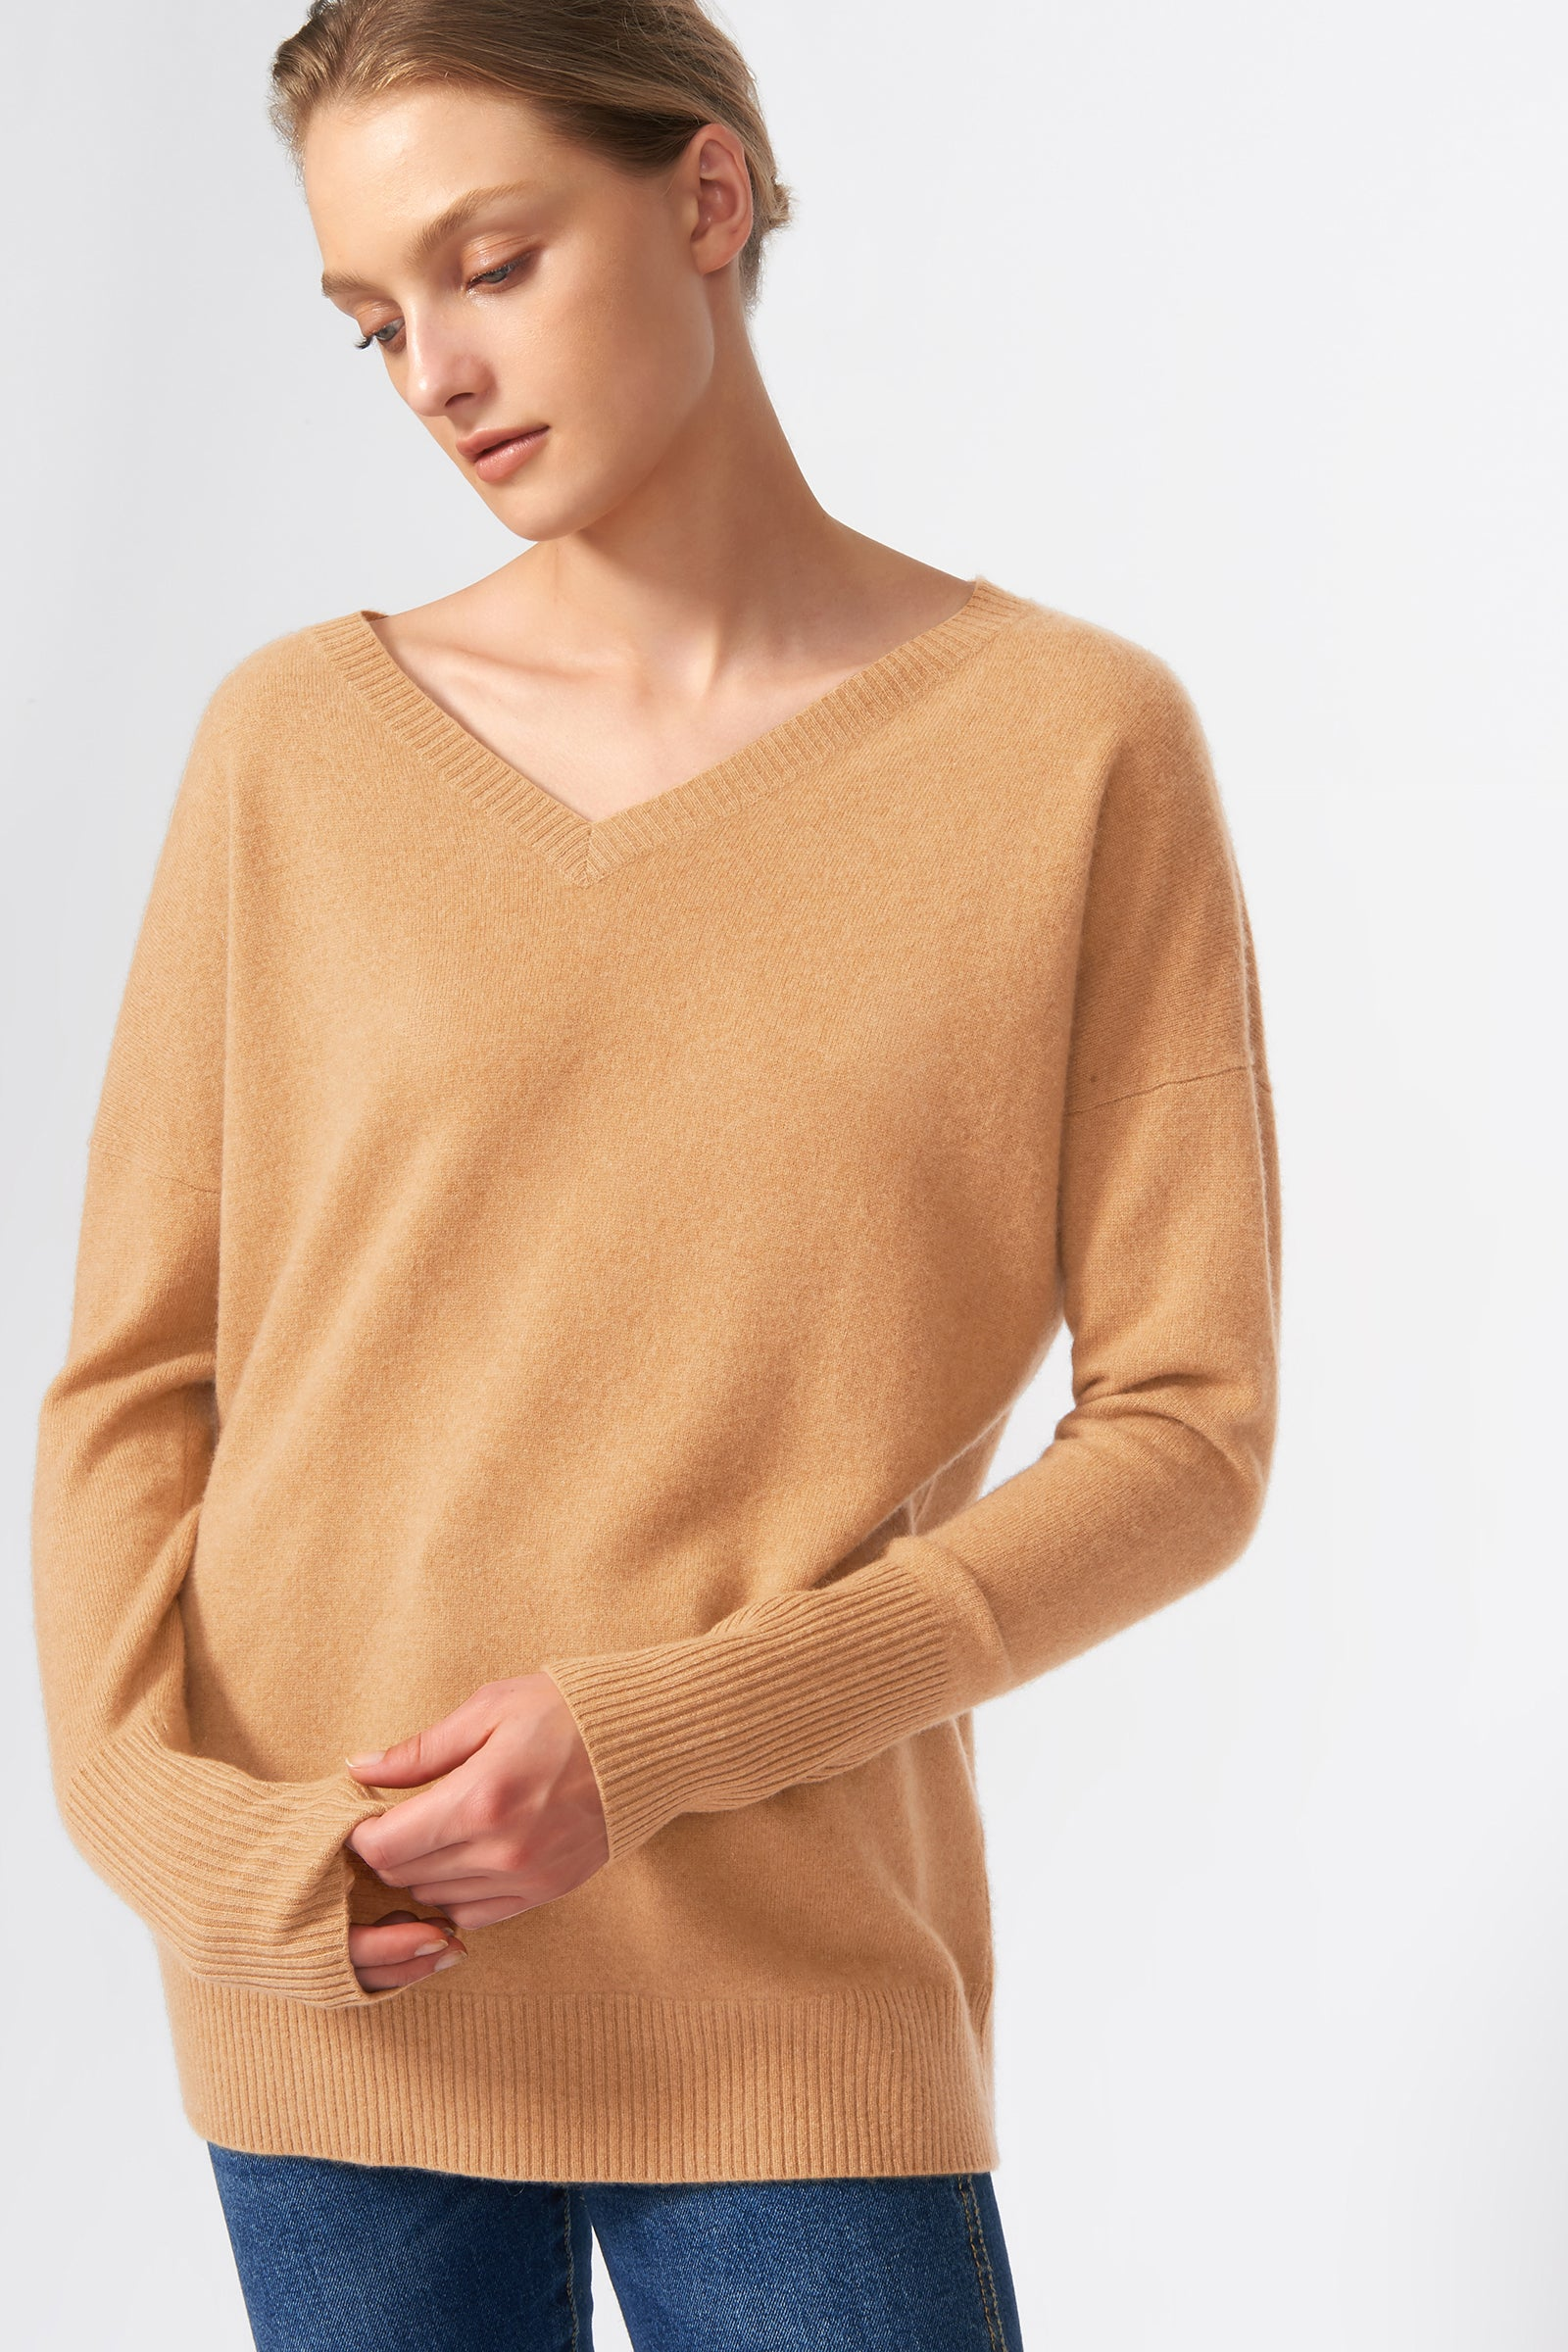 Kal Rieman Cashmere V Neck in Camel on Model Front View